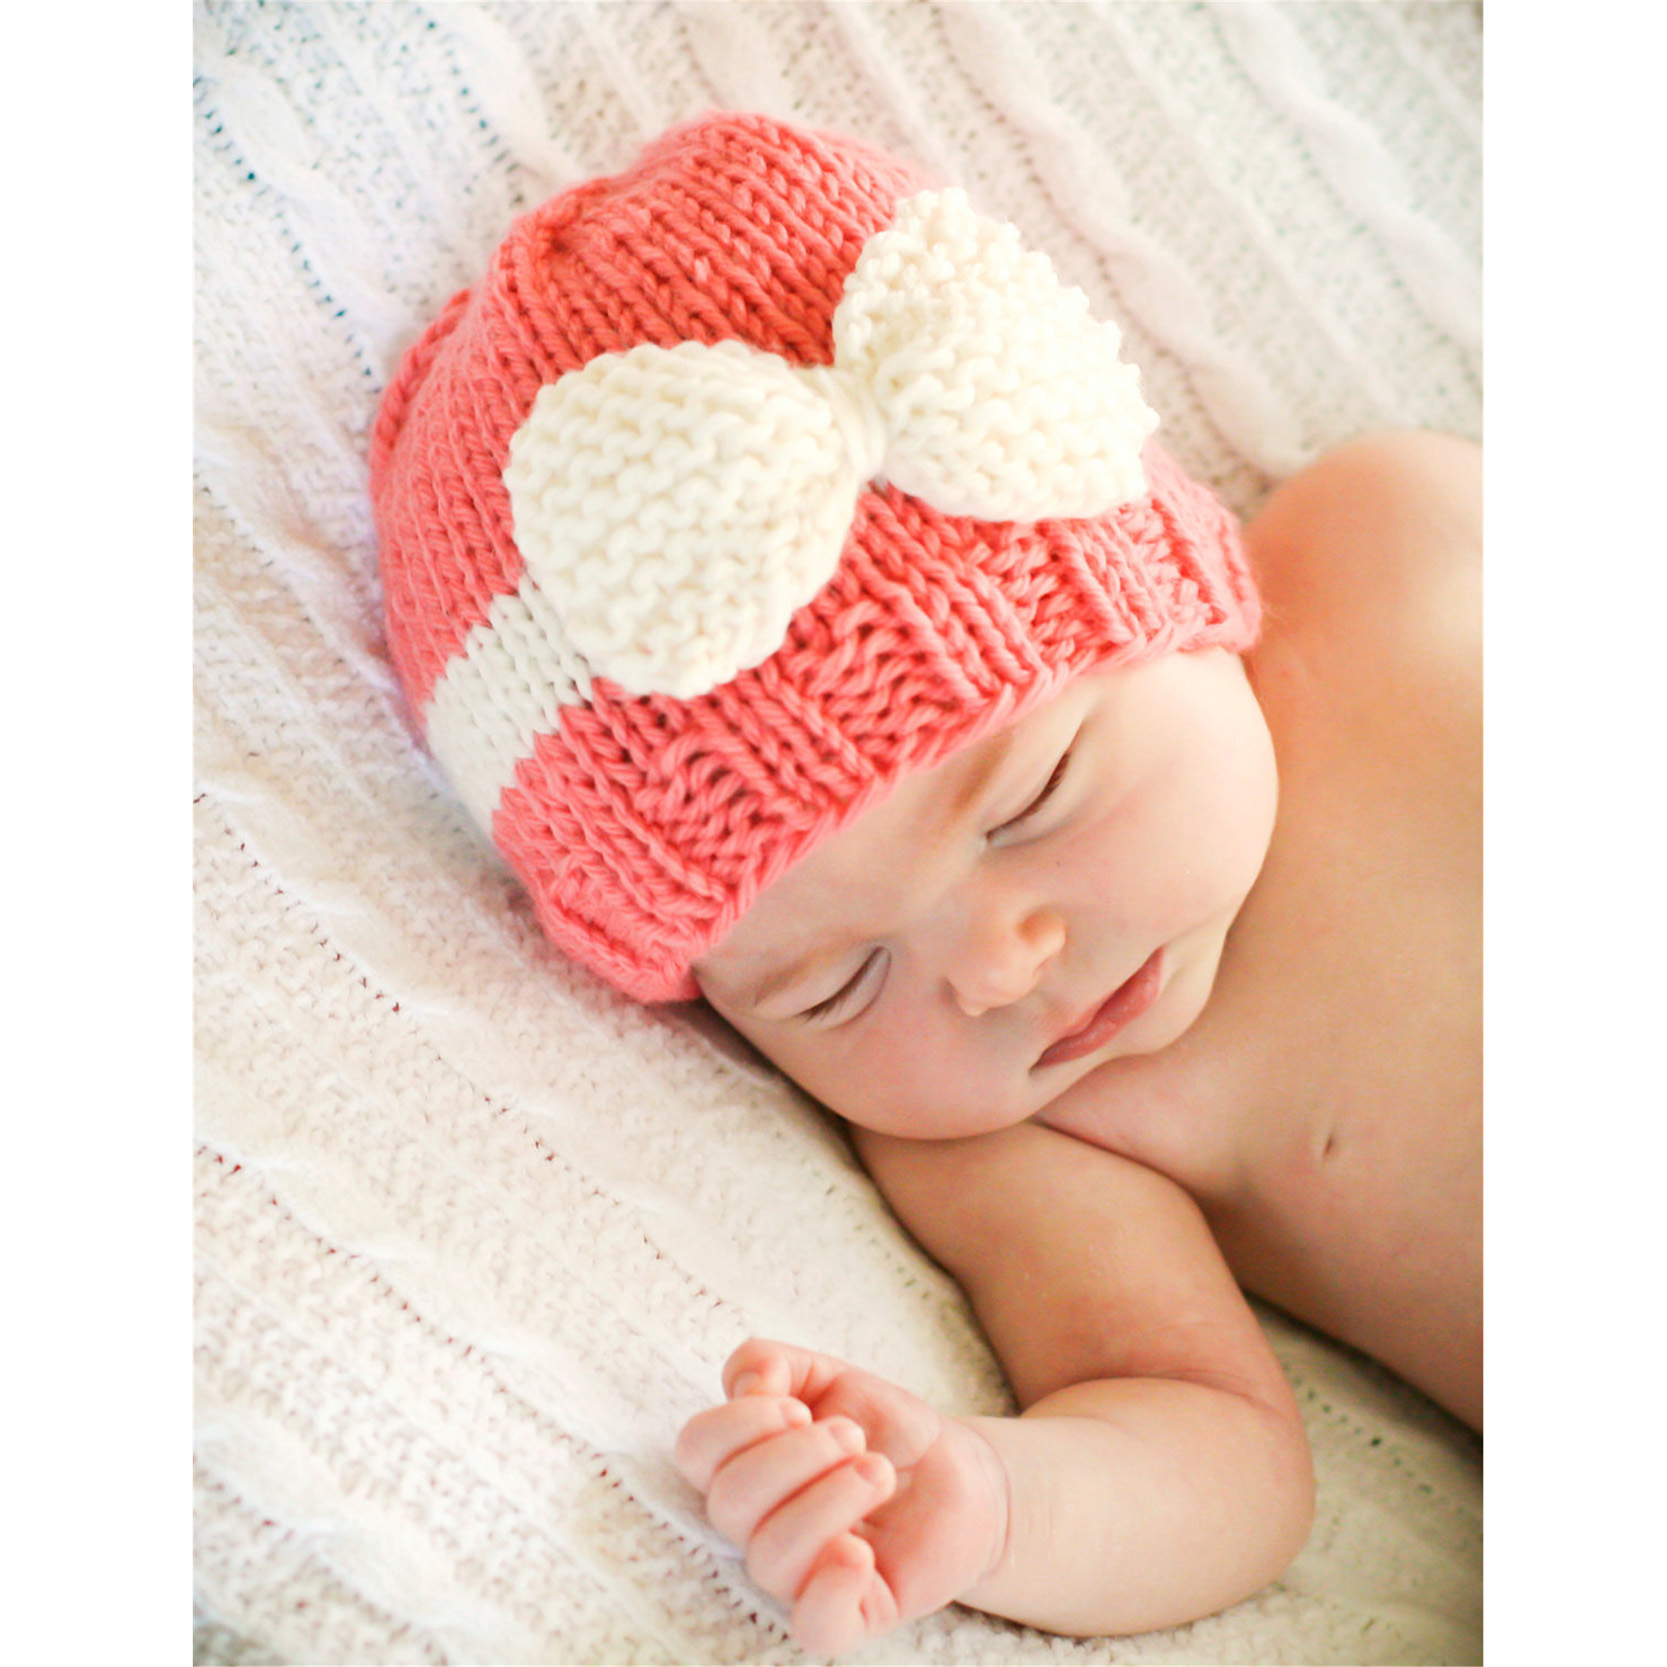 New Cute Newborn Baby Knitting Hat Bow Knot Cap Infant Girl Winter Warm Beanie-in Hats & Caps from Mother & Kids on Aliexpress.com Alibaba Group